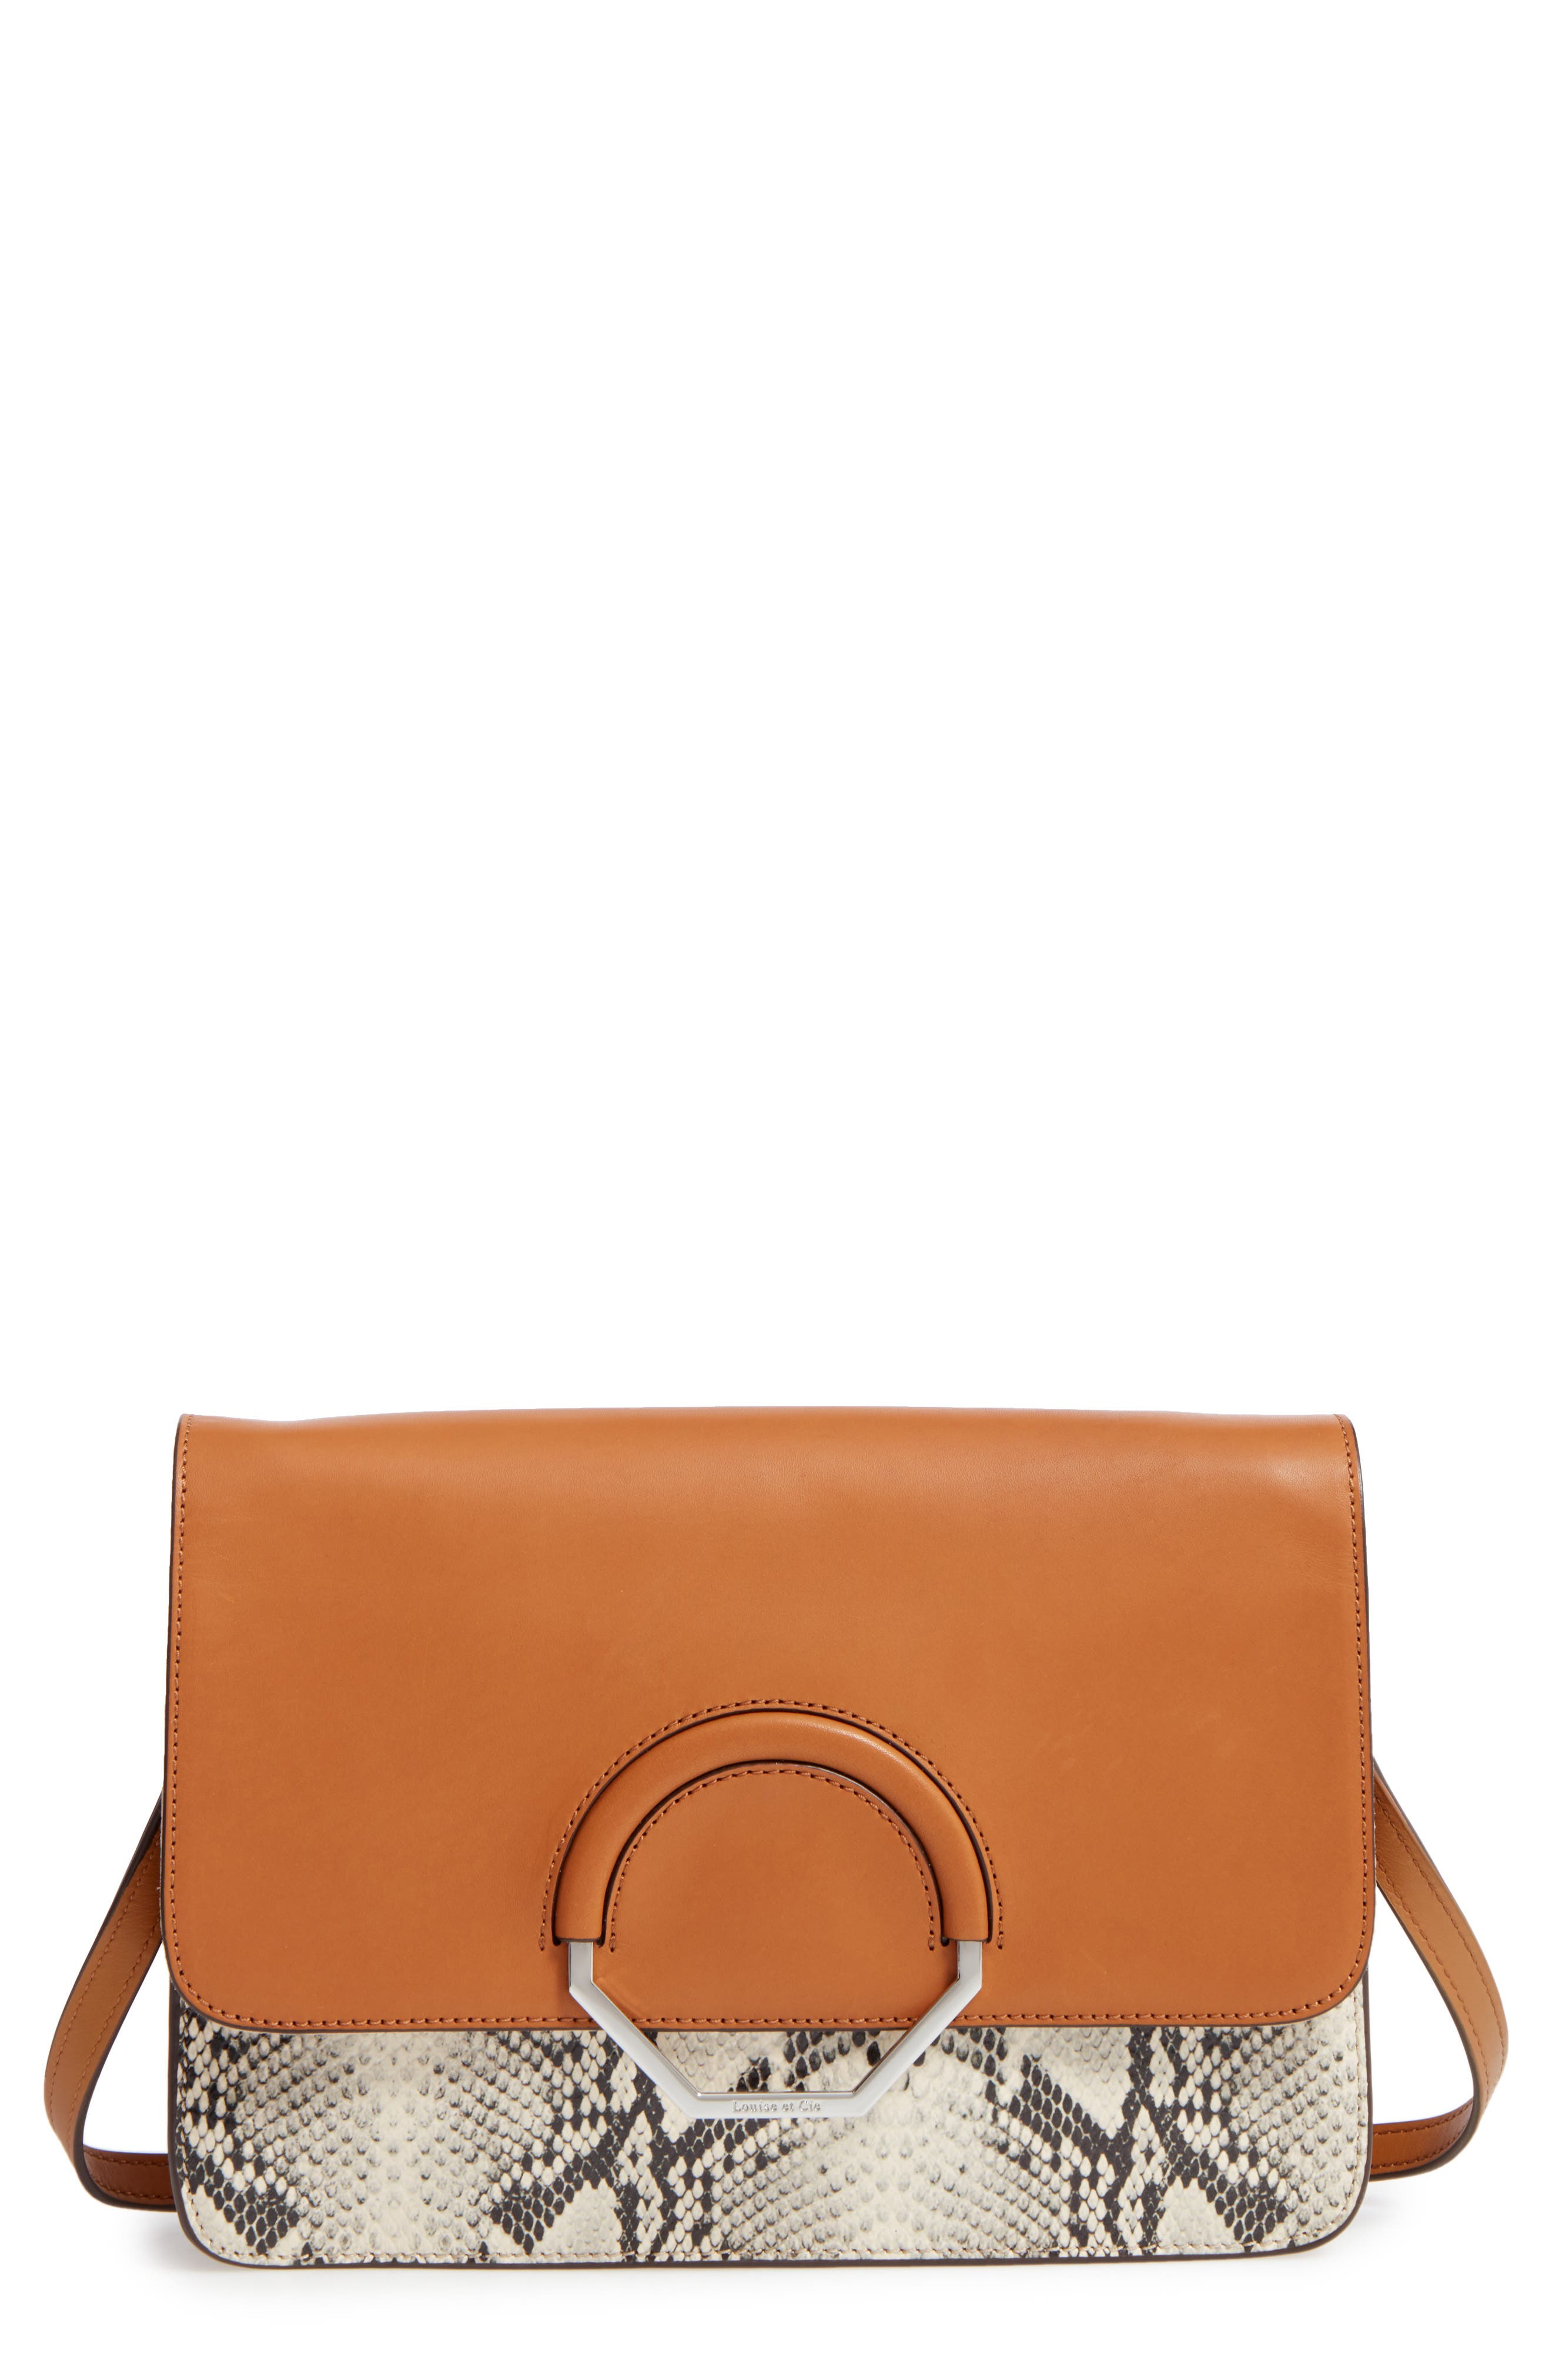 Louise et Cie Maree Convertible Leather Clutch